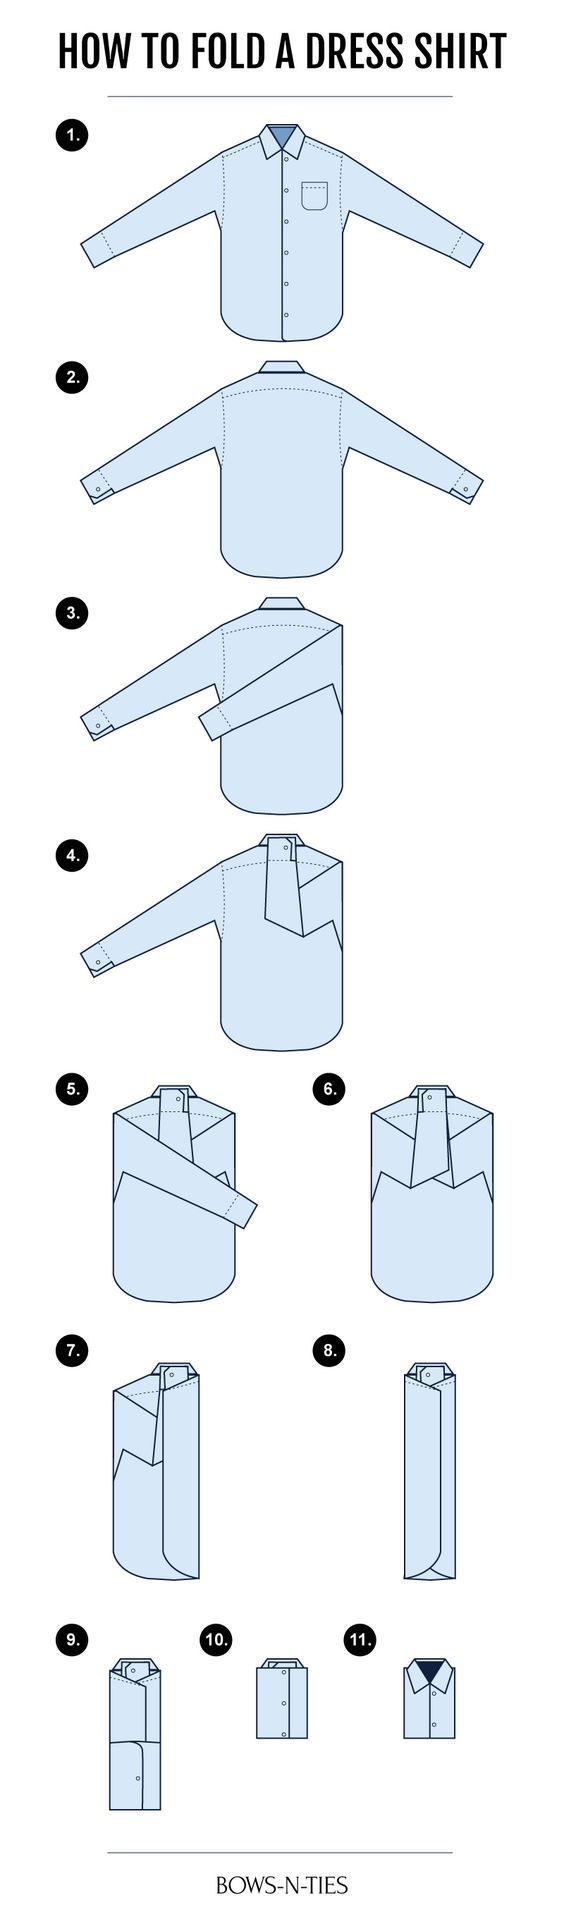 How To Pack a Suit Case For Business Trips | Bows-N-Ties.com (Diy Clothes Shirts)